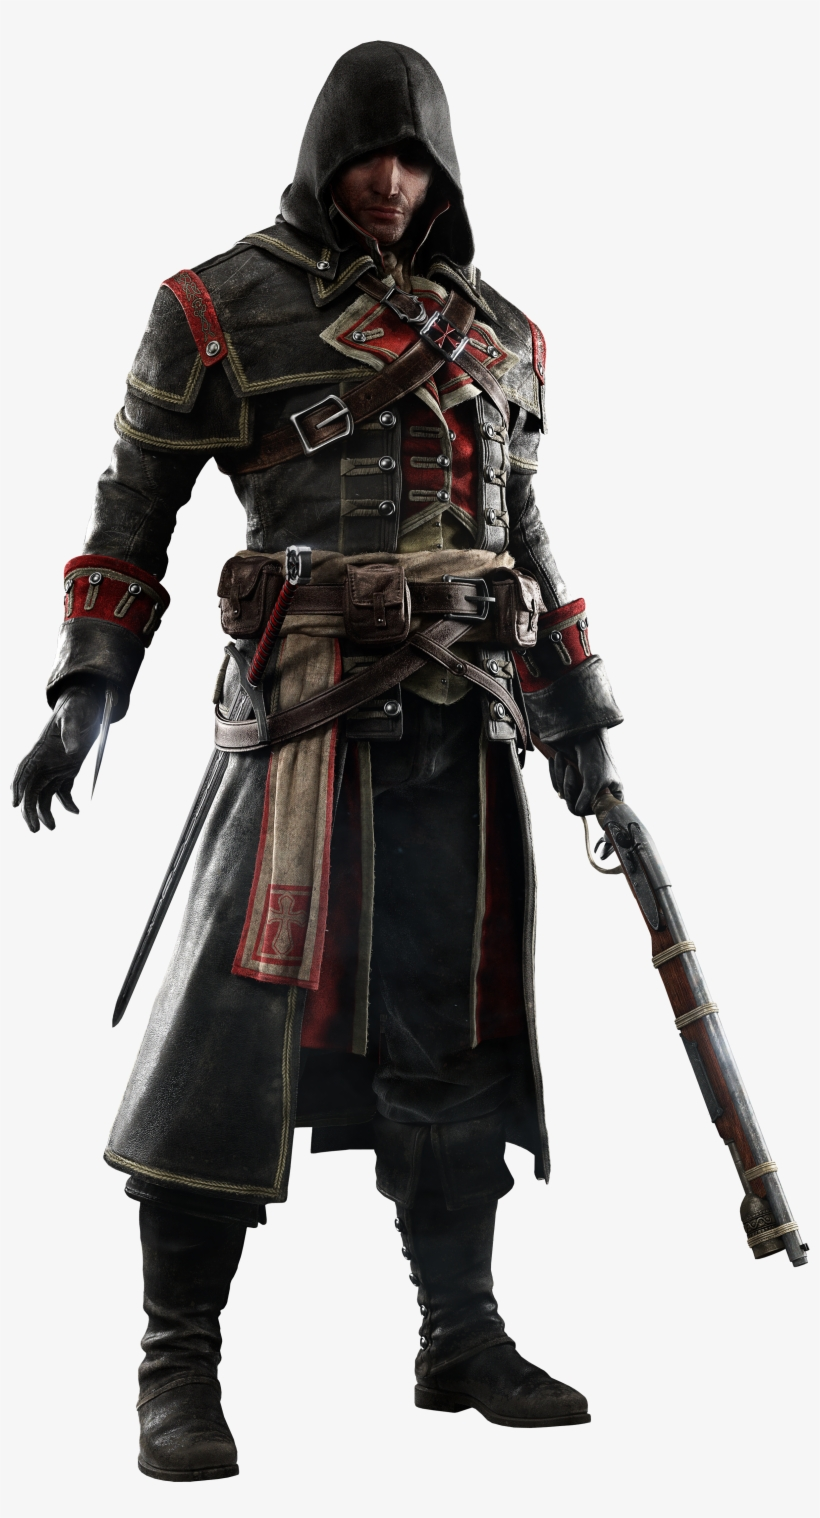 Shay Cormac Minecraft Skin Assassins Creed Rogue Transparent Png